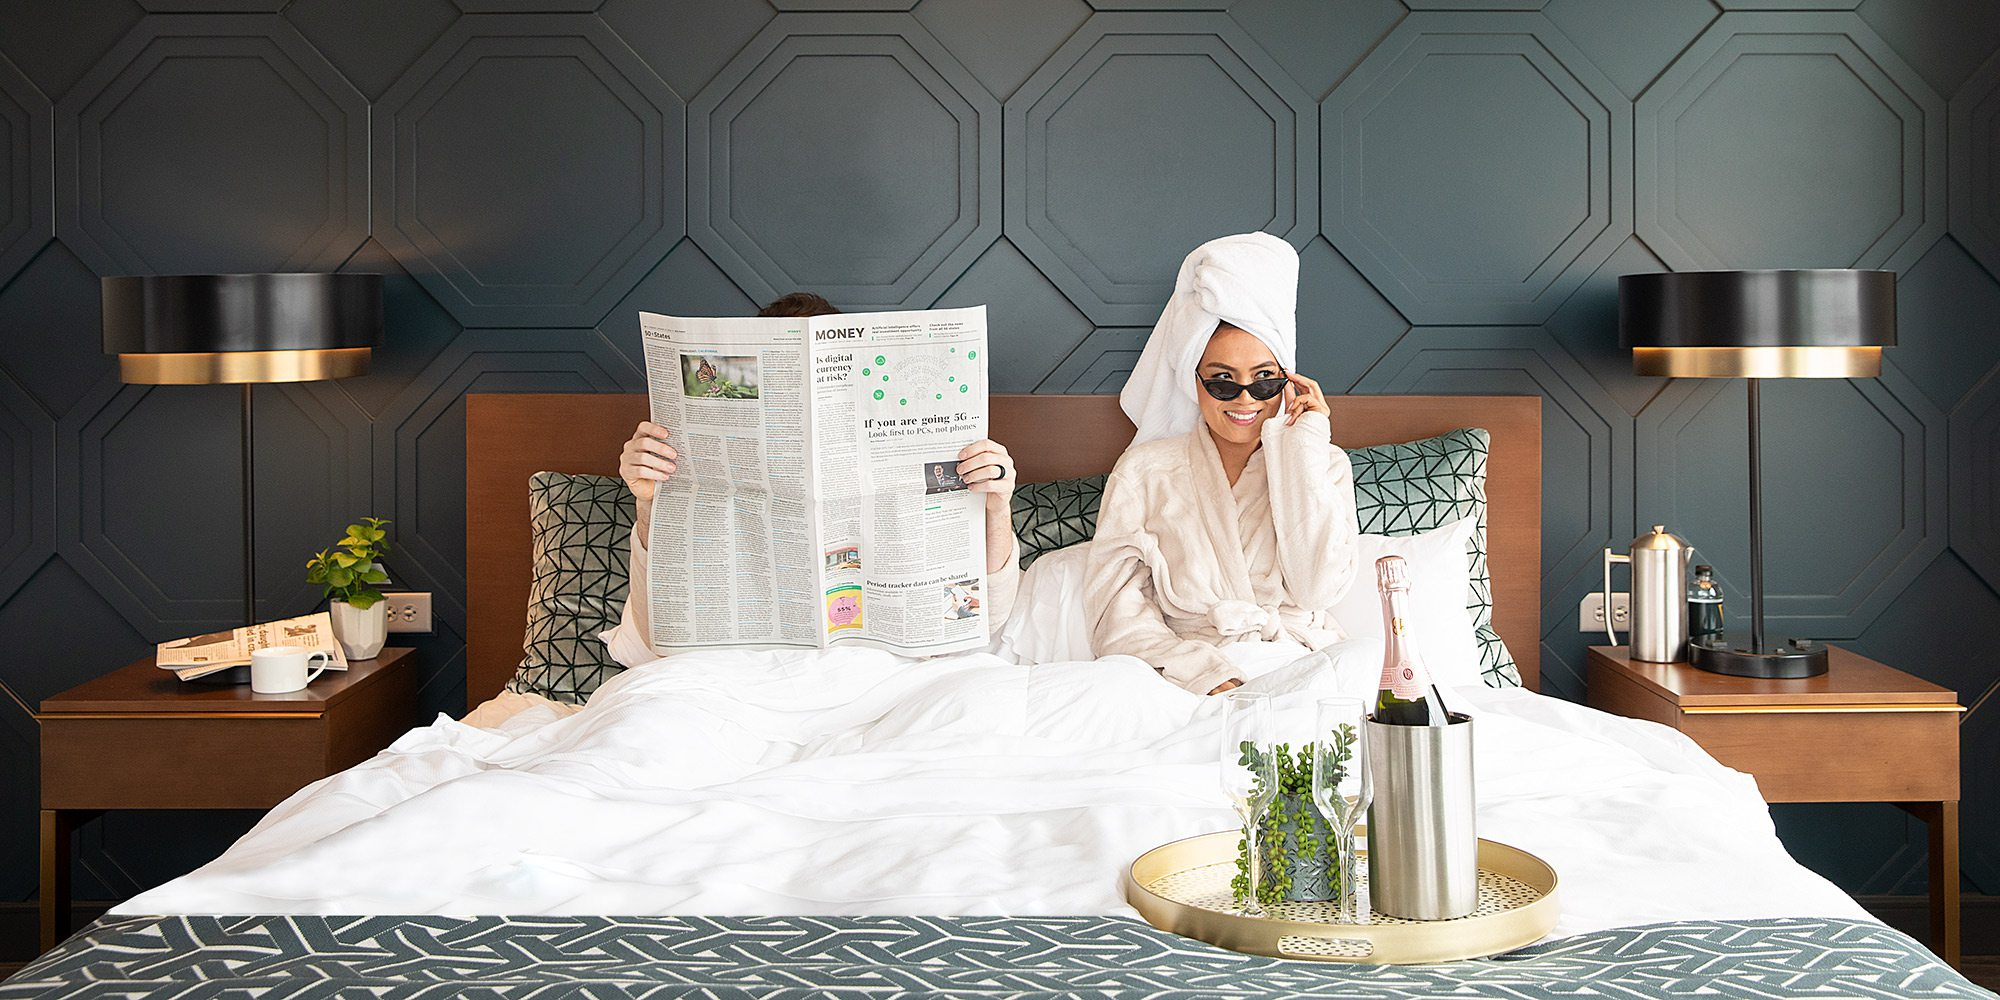 Couple lounging in bed at Hotel Vandivort in Springfield, MO